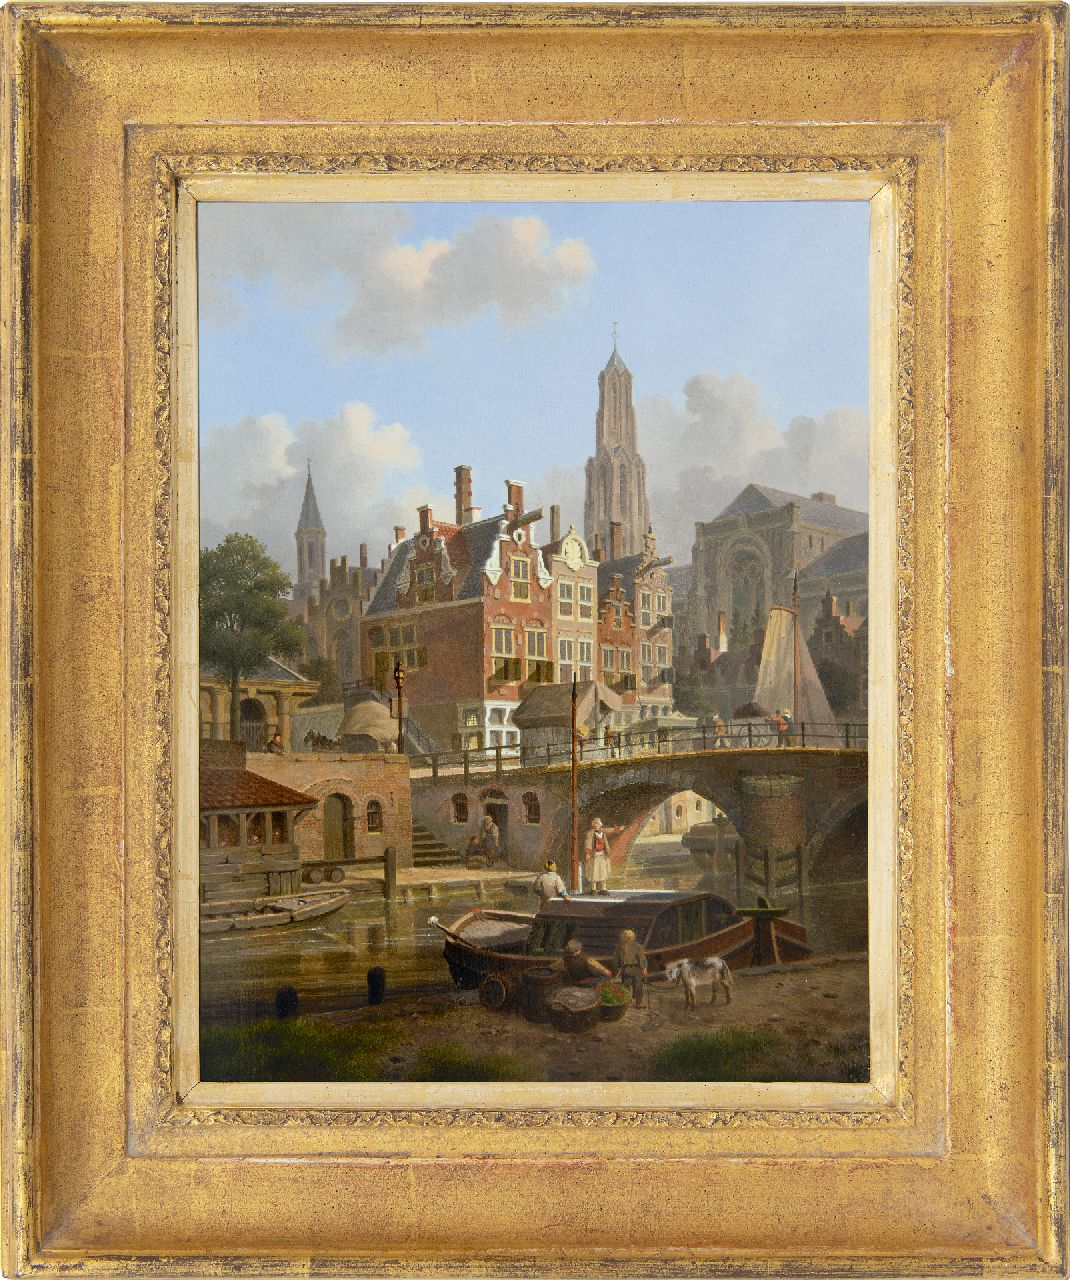 Verheijen J.H.  | Jan Hendrik Verheijen | Paintings offered for sale | A capriccio of the Oudegracht and the Domchurch in Utrecht, oil on panel 31.7 x 24.2 cm, signed l.l.